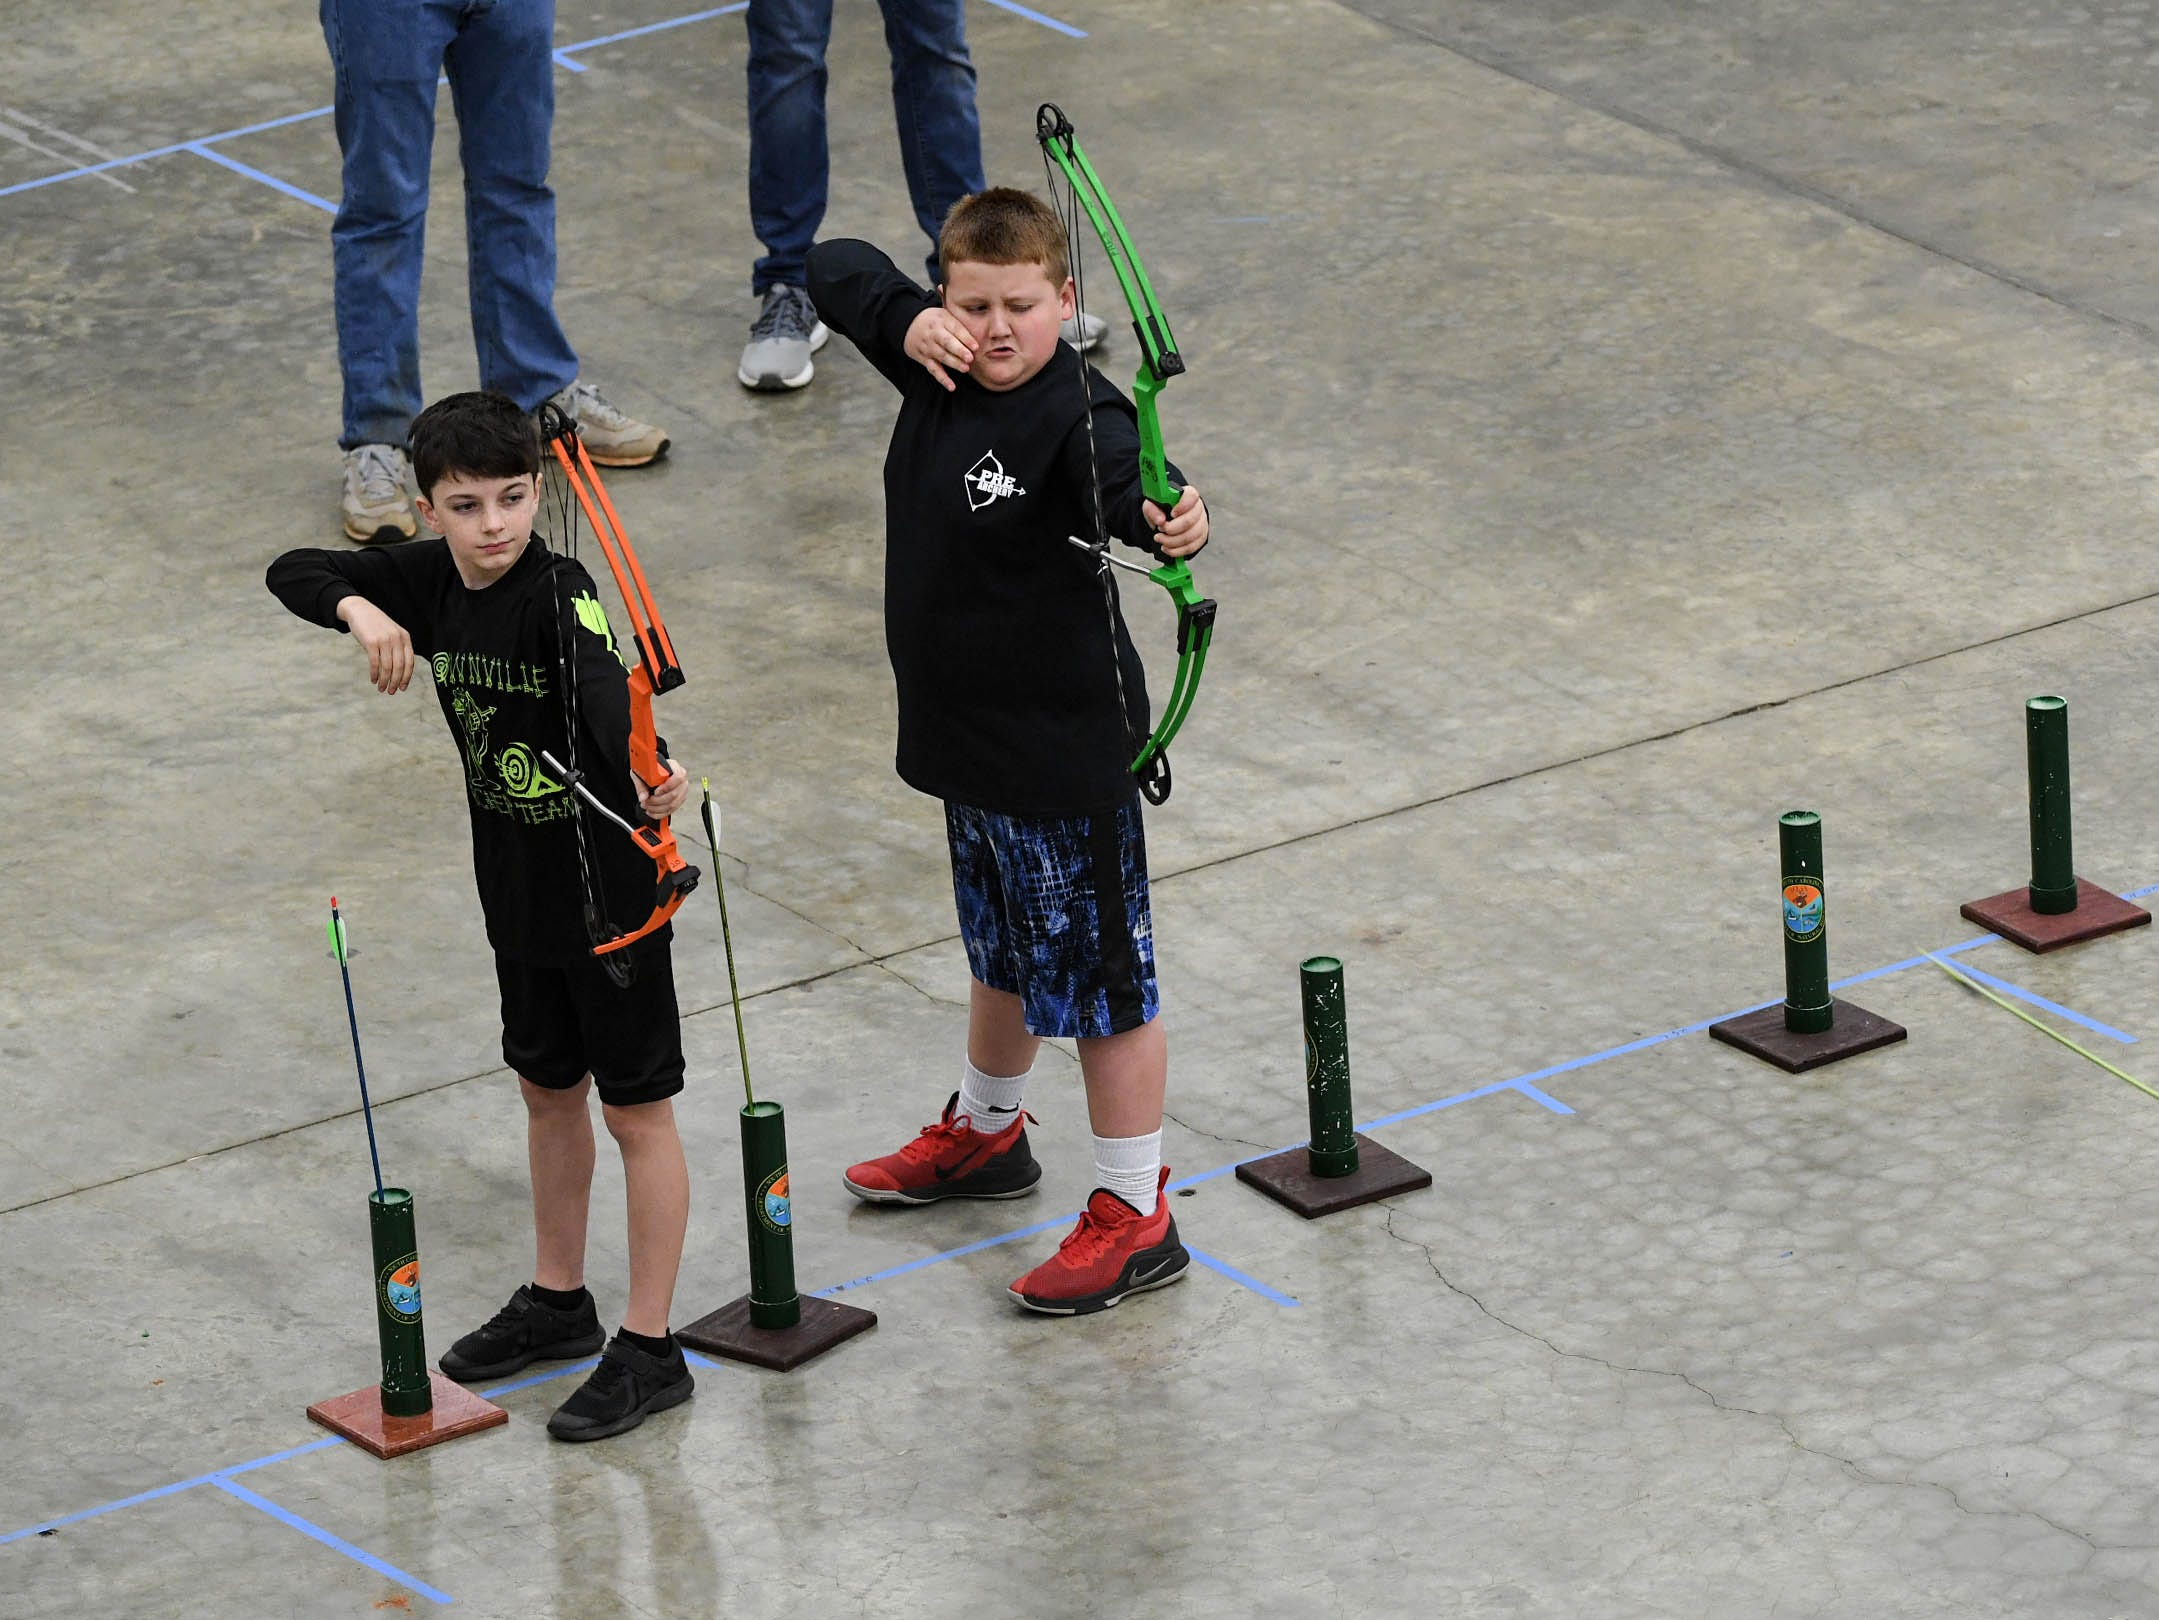 Students release arrows toward their target during the South Carolina Department of Natural Resources regional National Archery in the Schools Program (NASP) regional competition at the Anderson Civic Center Wednesday.